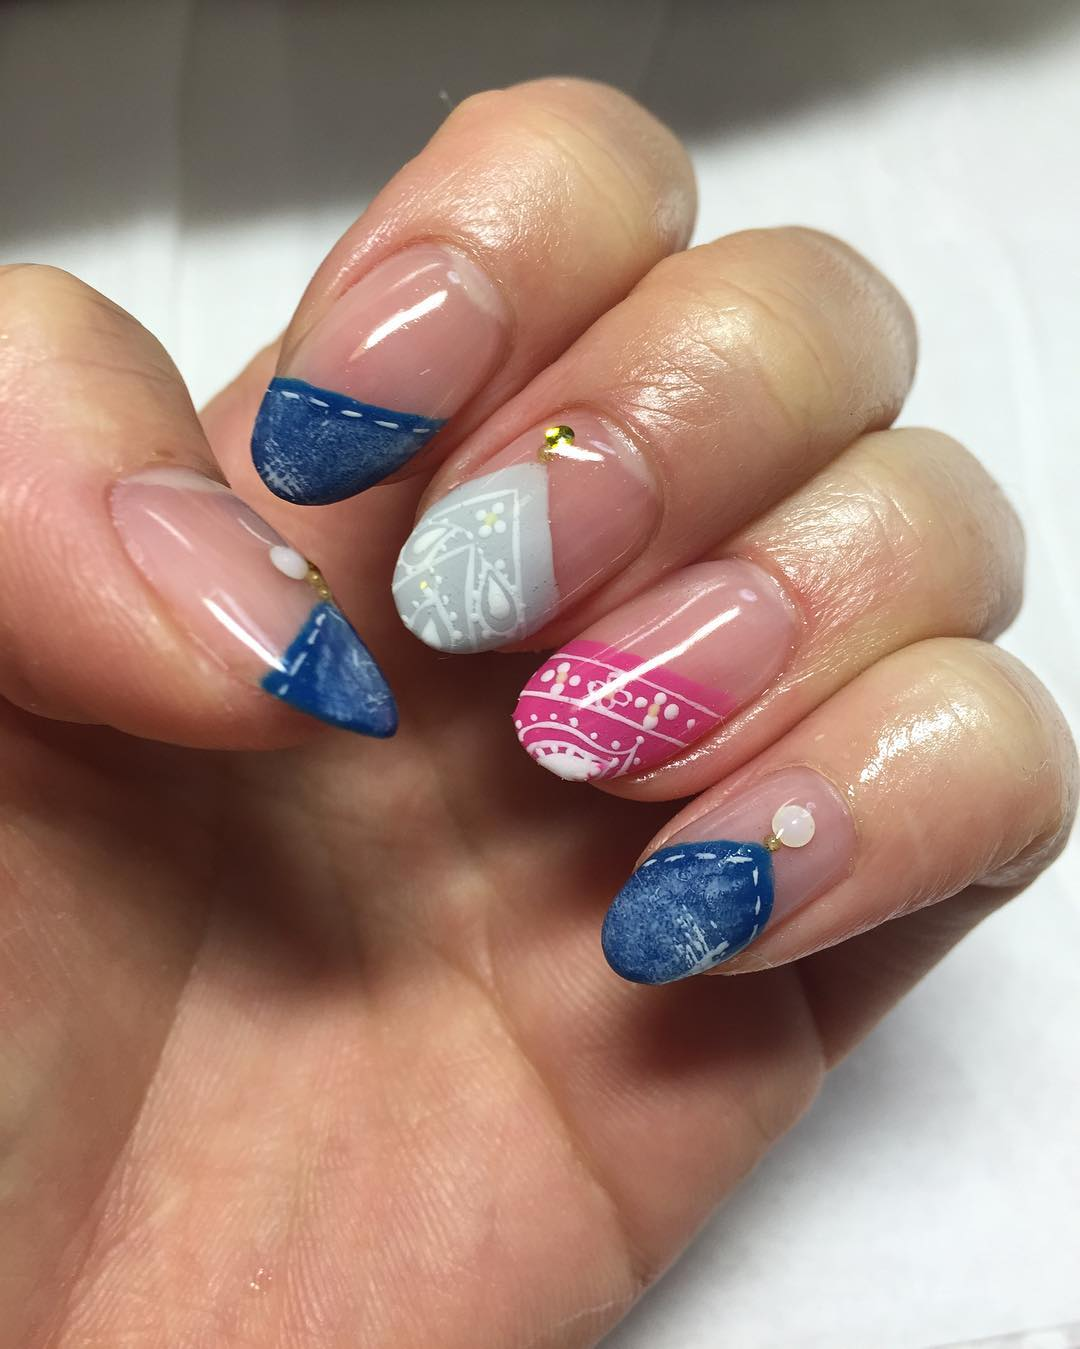 tip lace nail design for summer